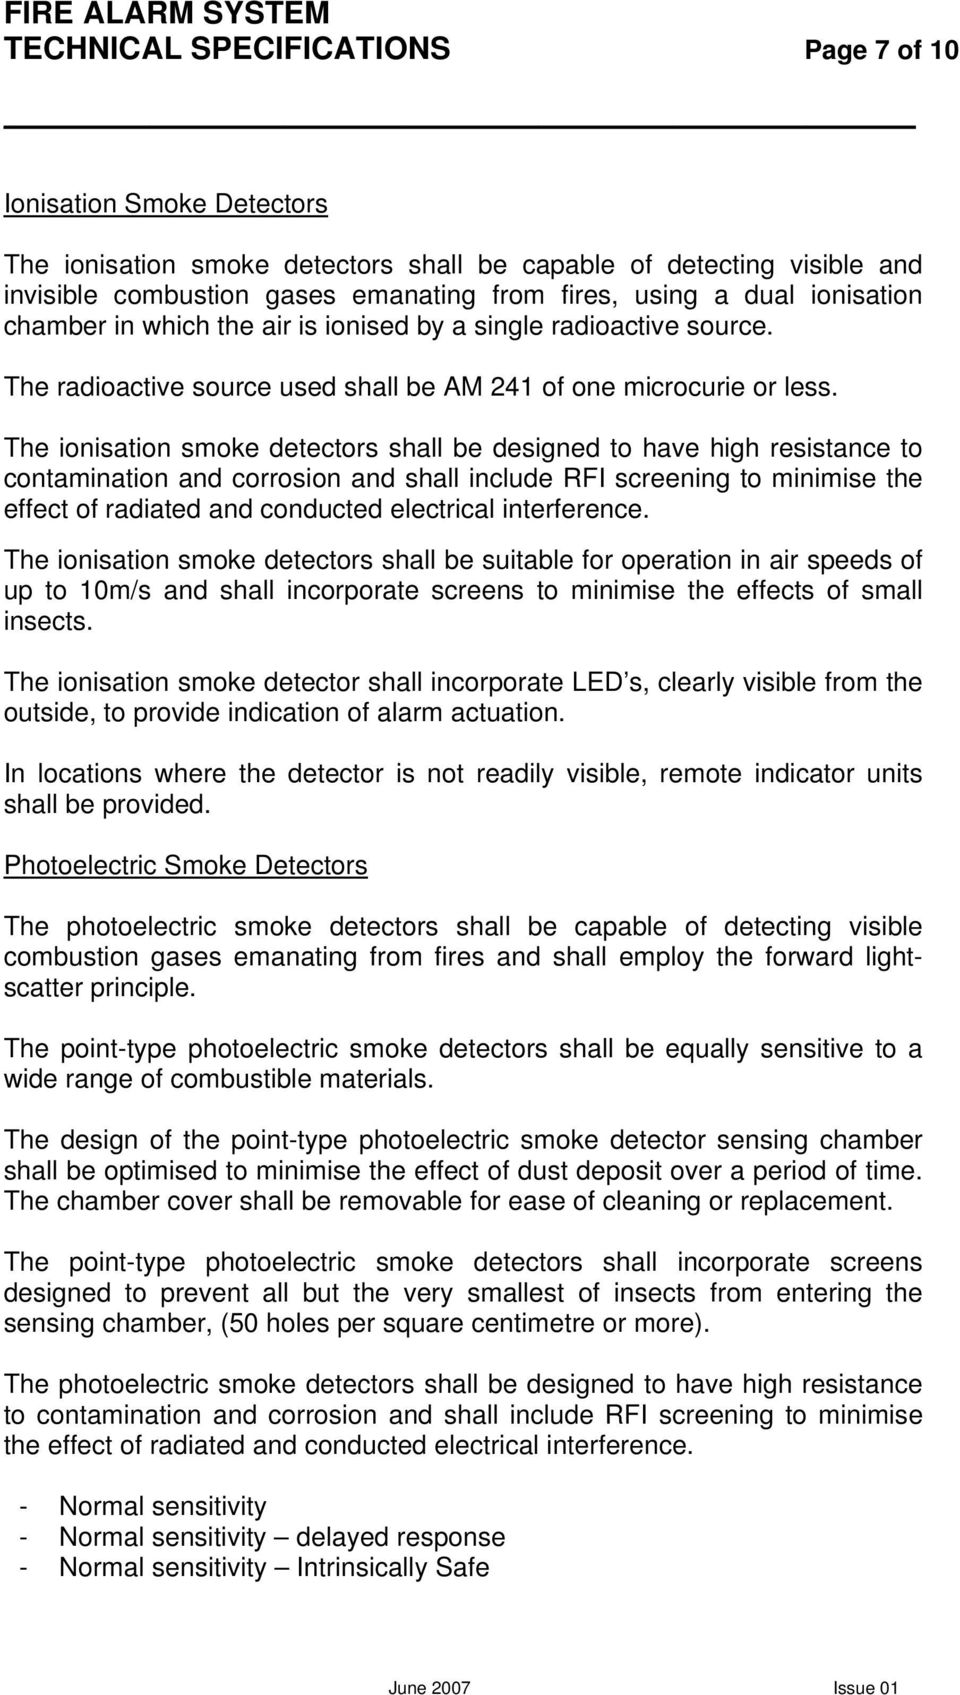 The ionisation smoke detectors shall be designed to have high resistance to contamination and corrosion and shall include RFI screening to minimise the effect of radiated and conducted electrical